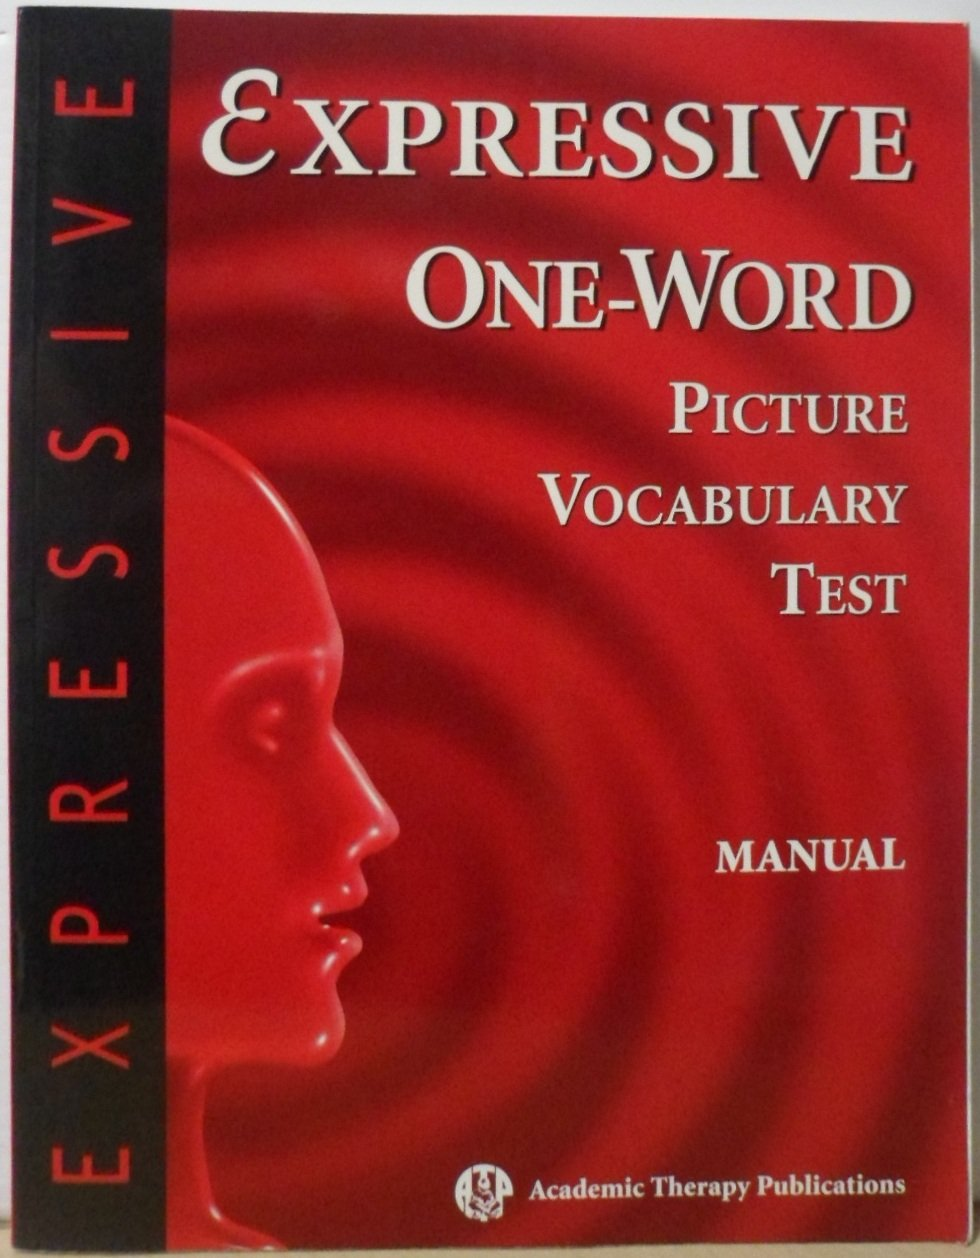 Expressive One Word Picture Vocabulary Test Manual: Rick Brownell:  9781571281357: Books - Amazon.ca